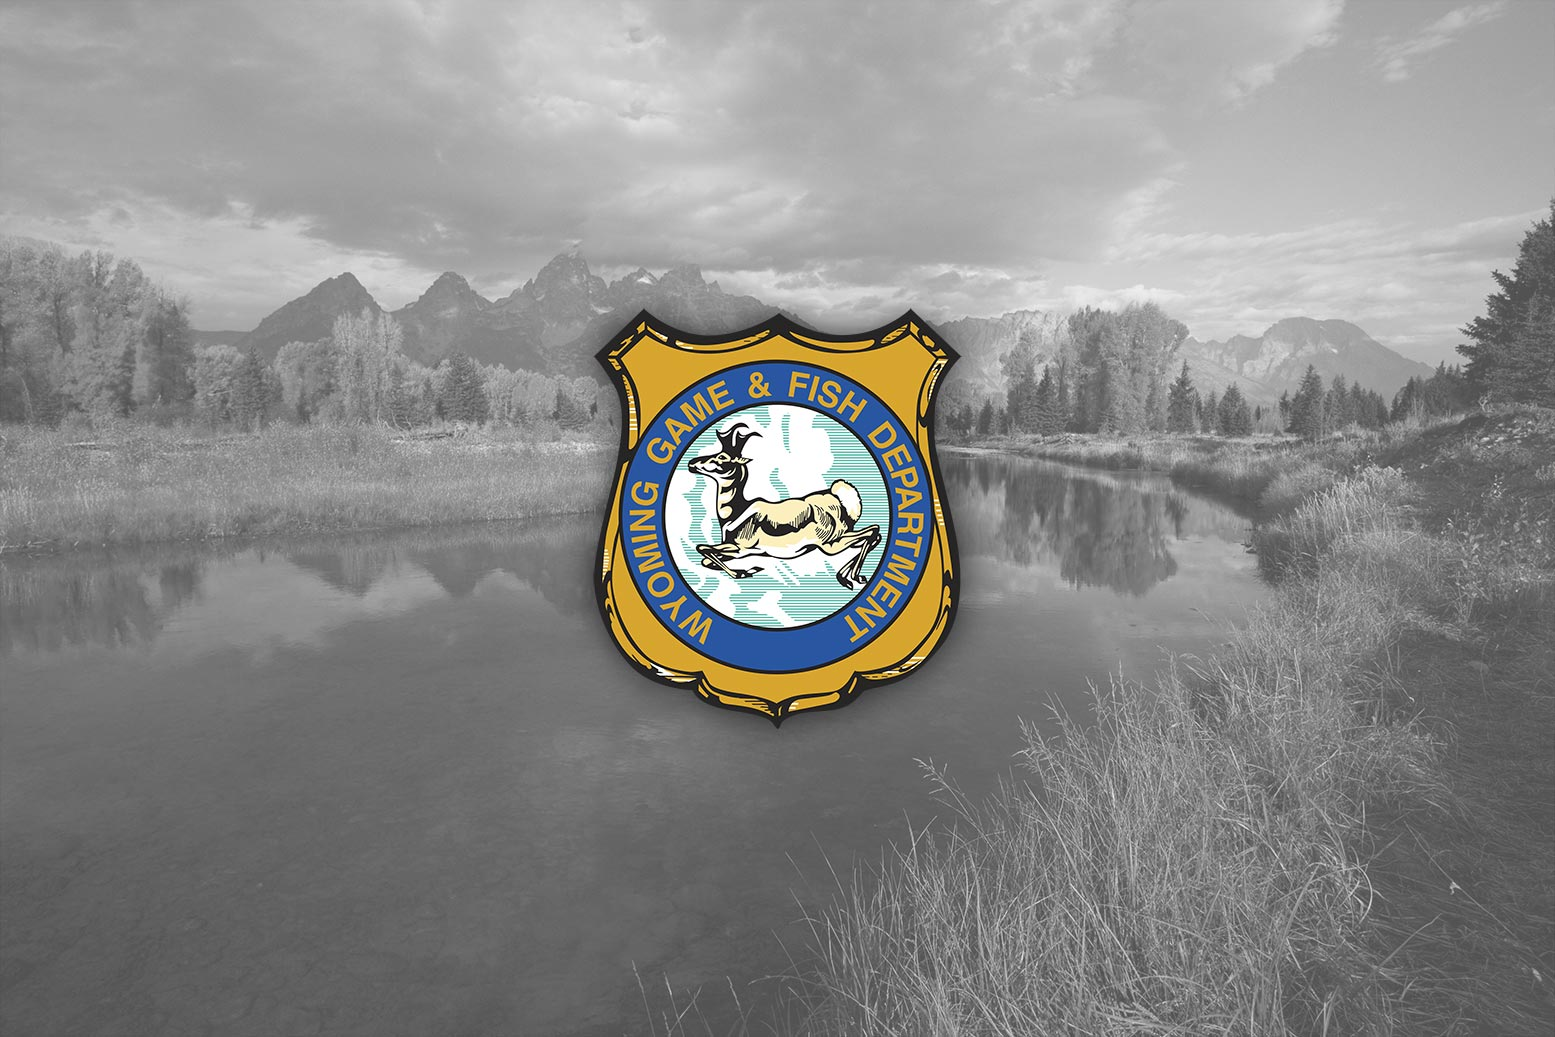 Wyoming game and fish department online and in person for Wyoming game and fish regulations